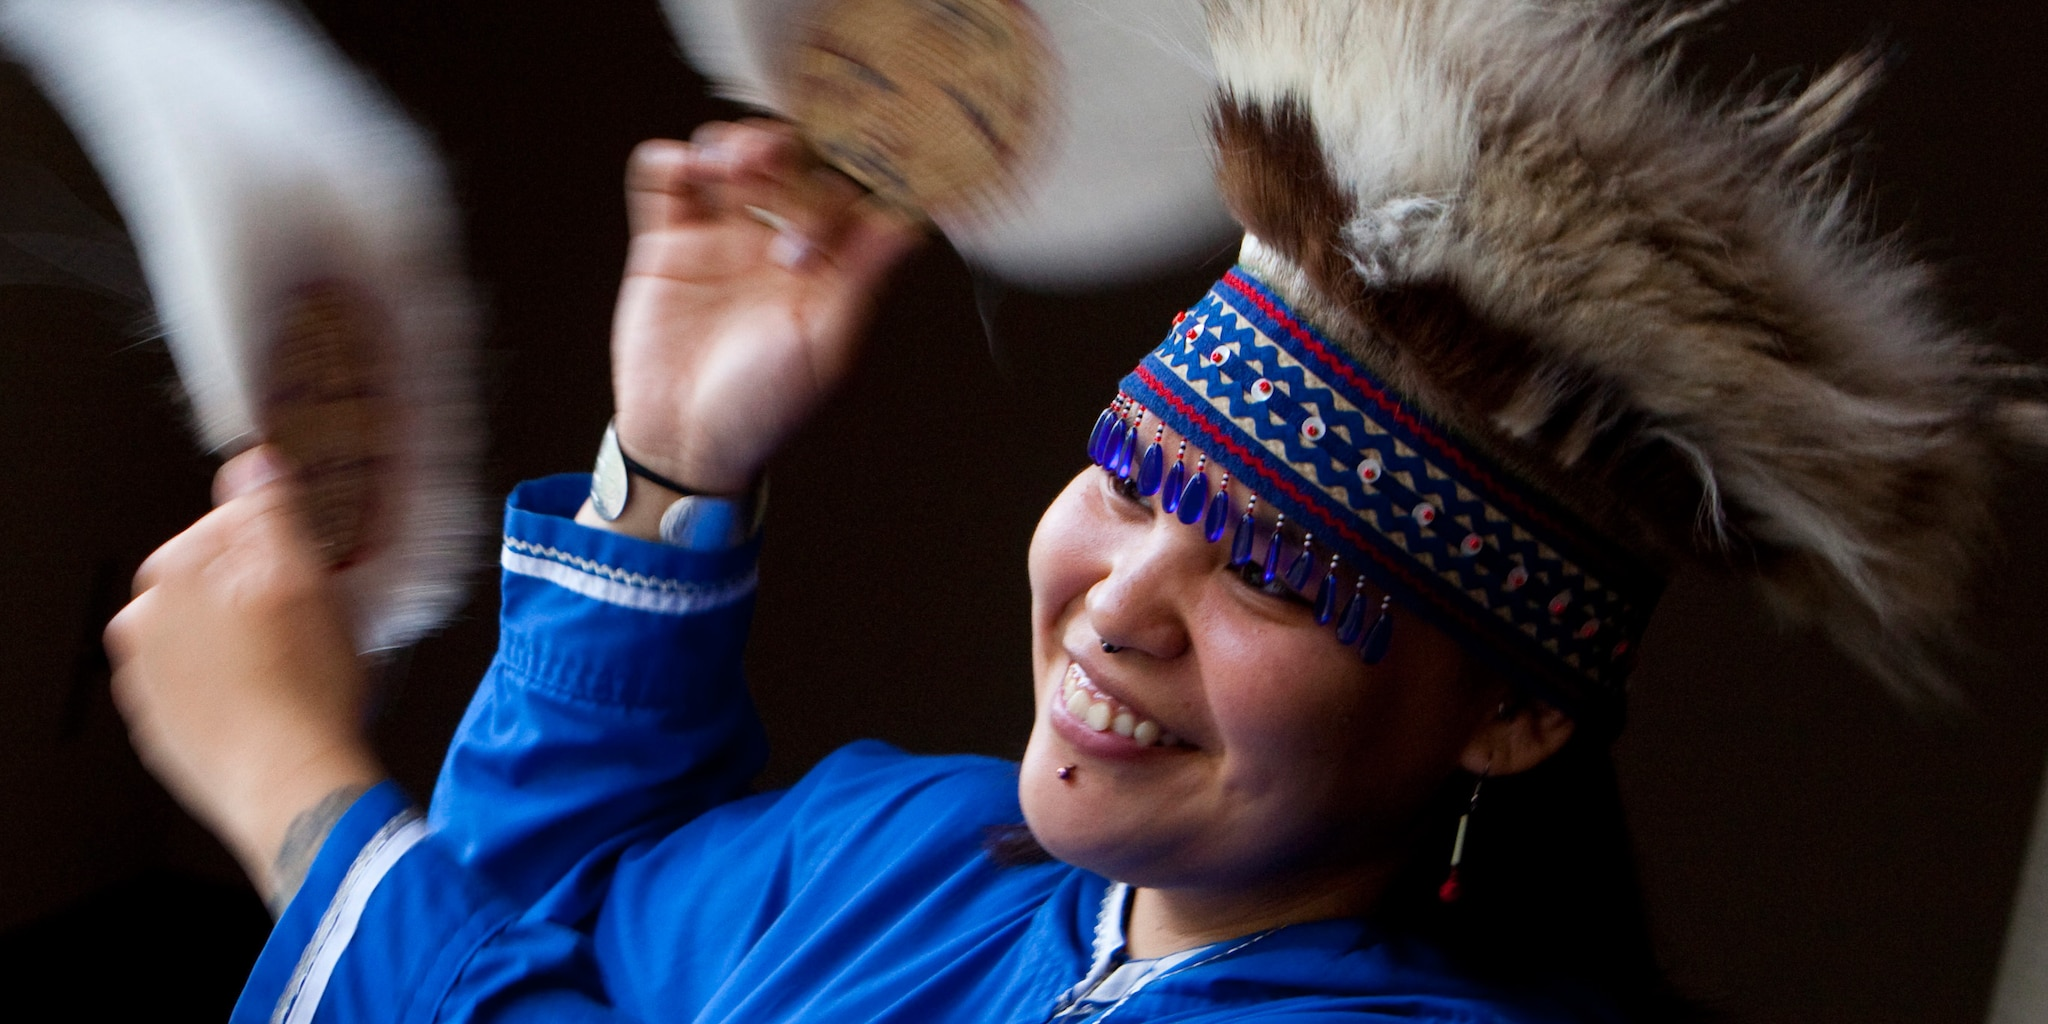 A dancing woman wears traditional Alaskan clothing and headdress